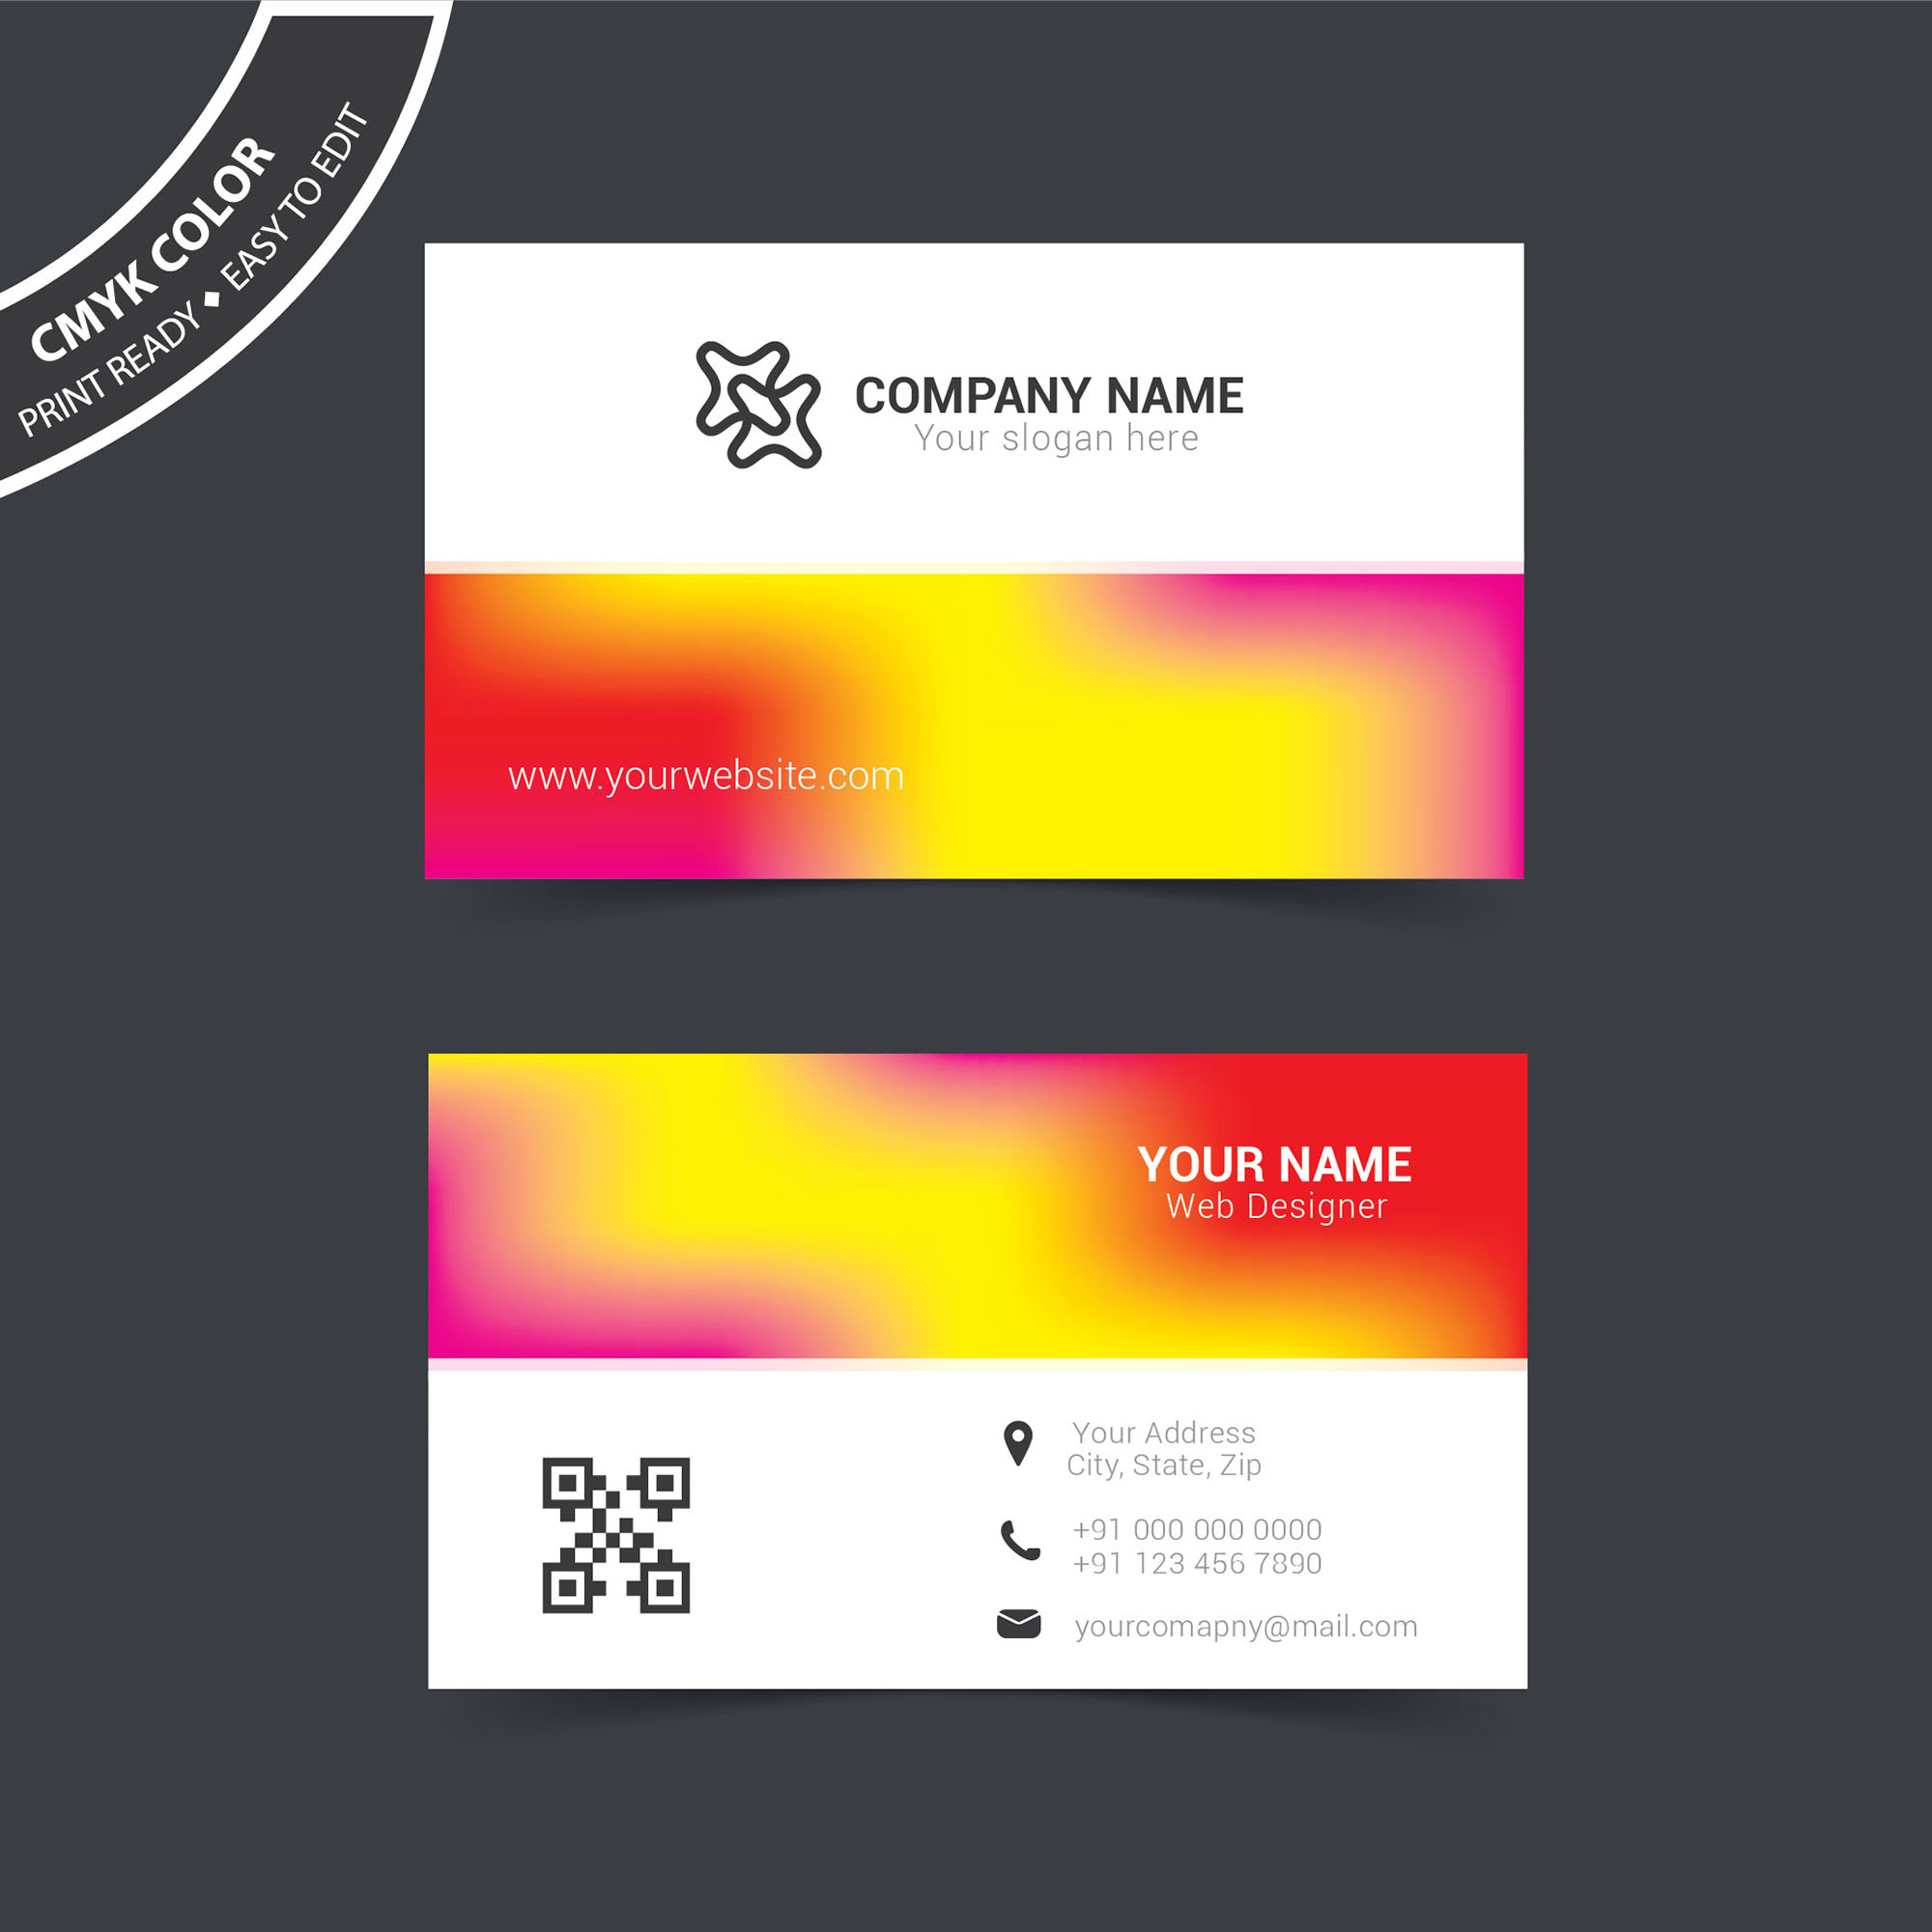 Colorful business card template free download wisxi business card business cards business card design business card template design templates reheart Choice Image